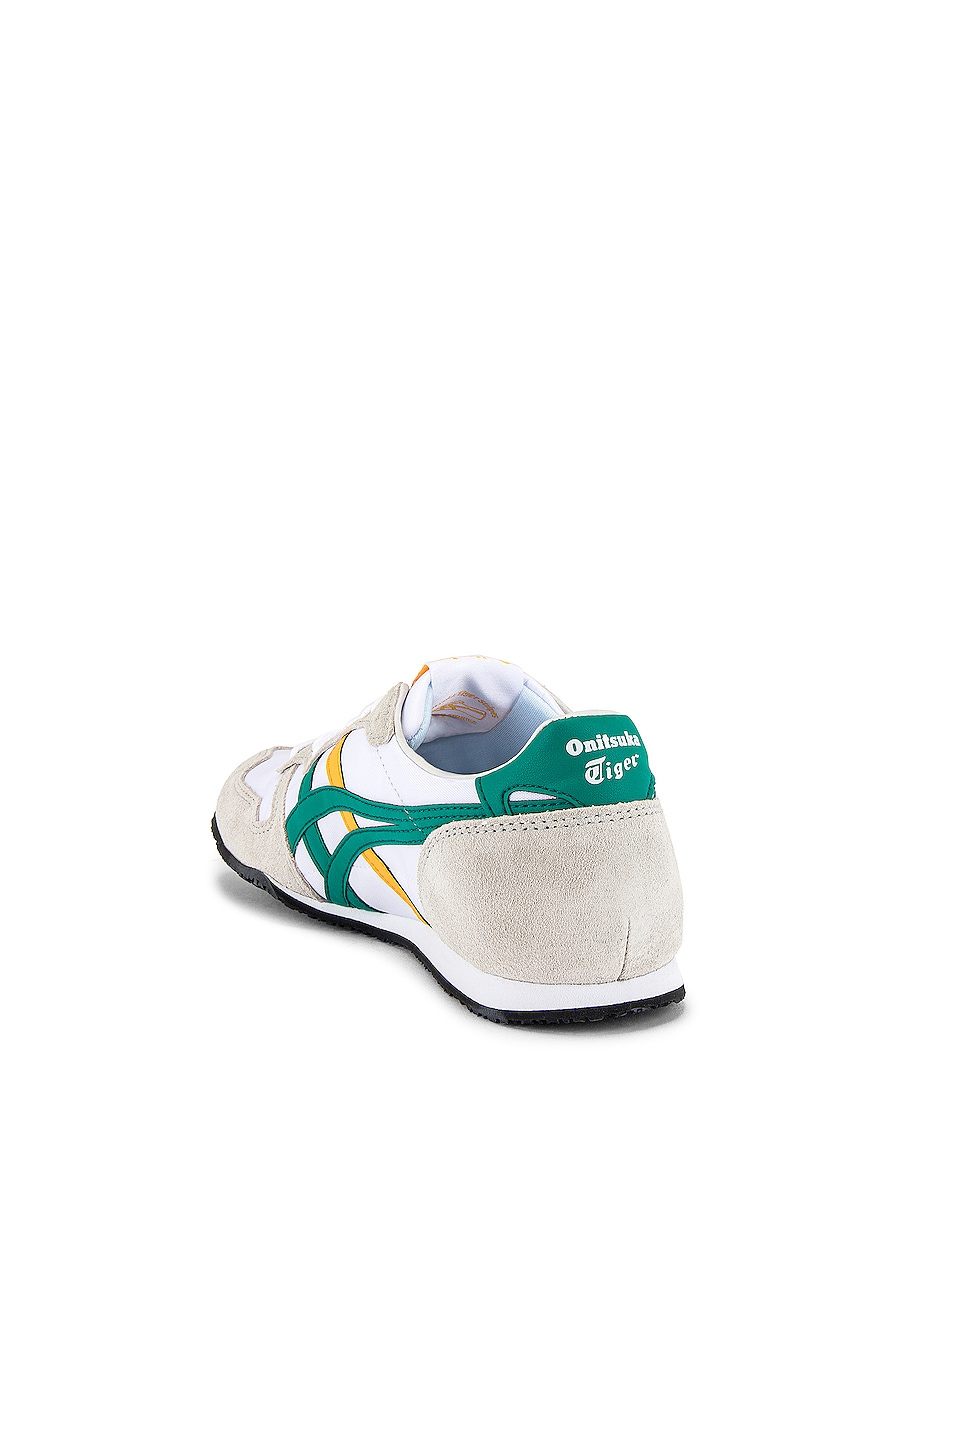 Image 3 of Onitsuka Tiger Serrano in White & Jelly Bean